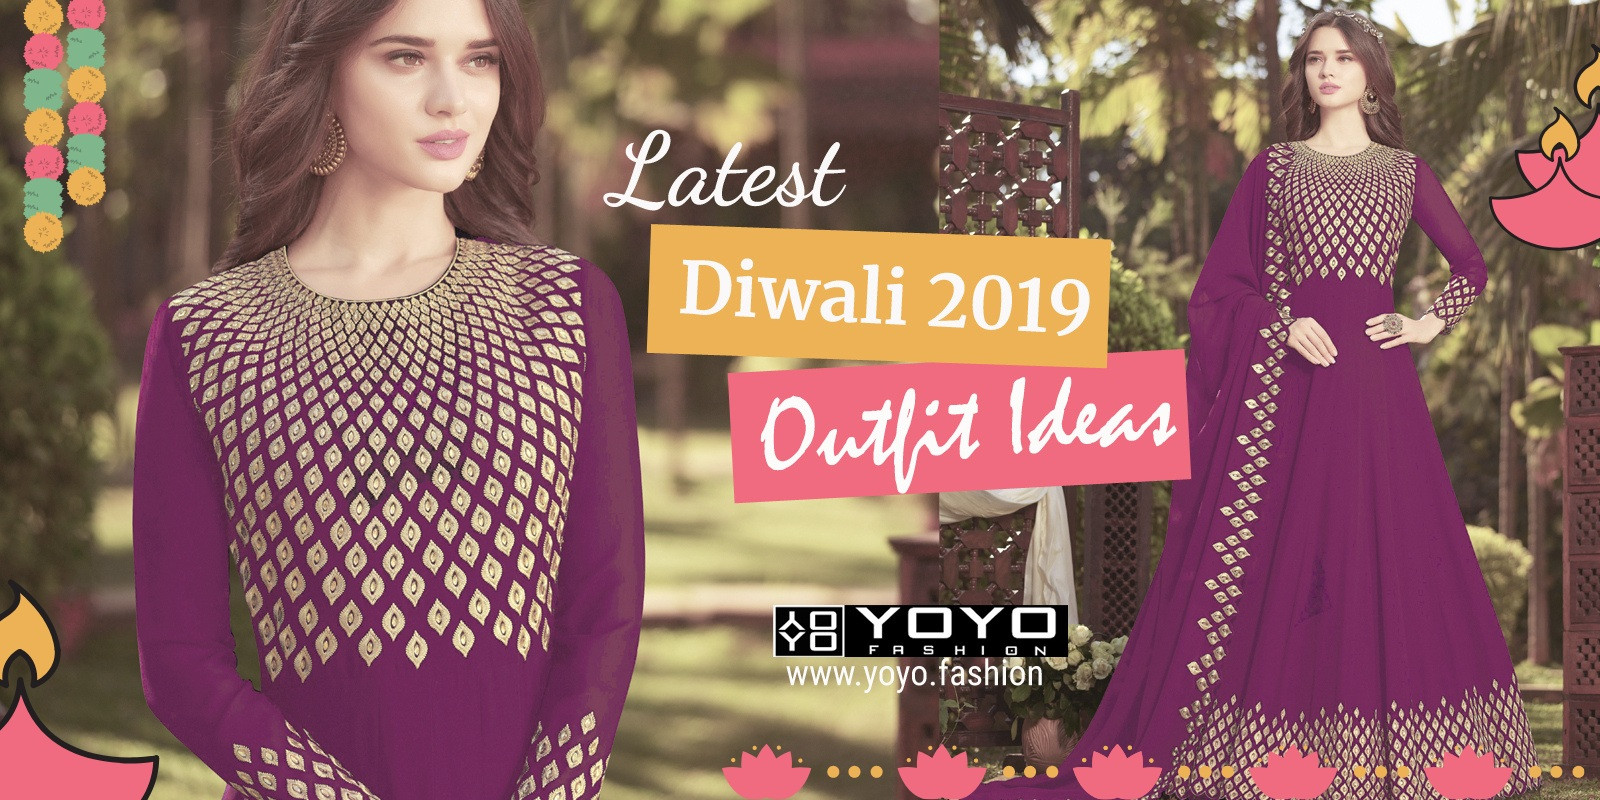 Latest Diwali 2019 Outfit Ideas for Women - YOYO Fashion